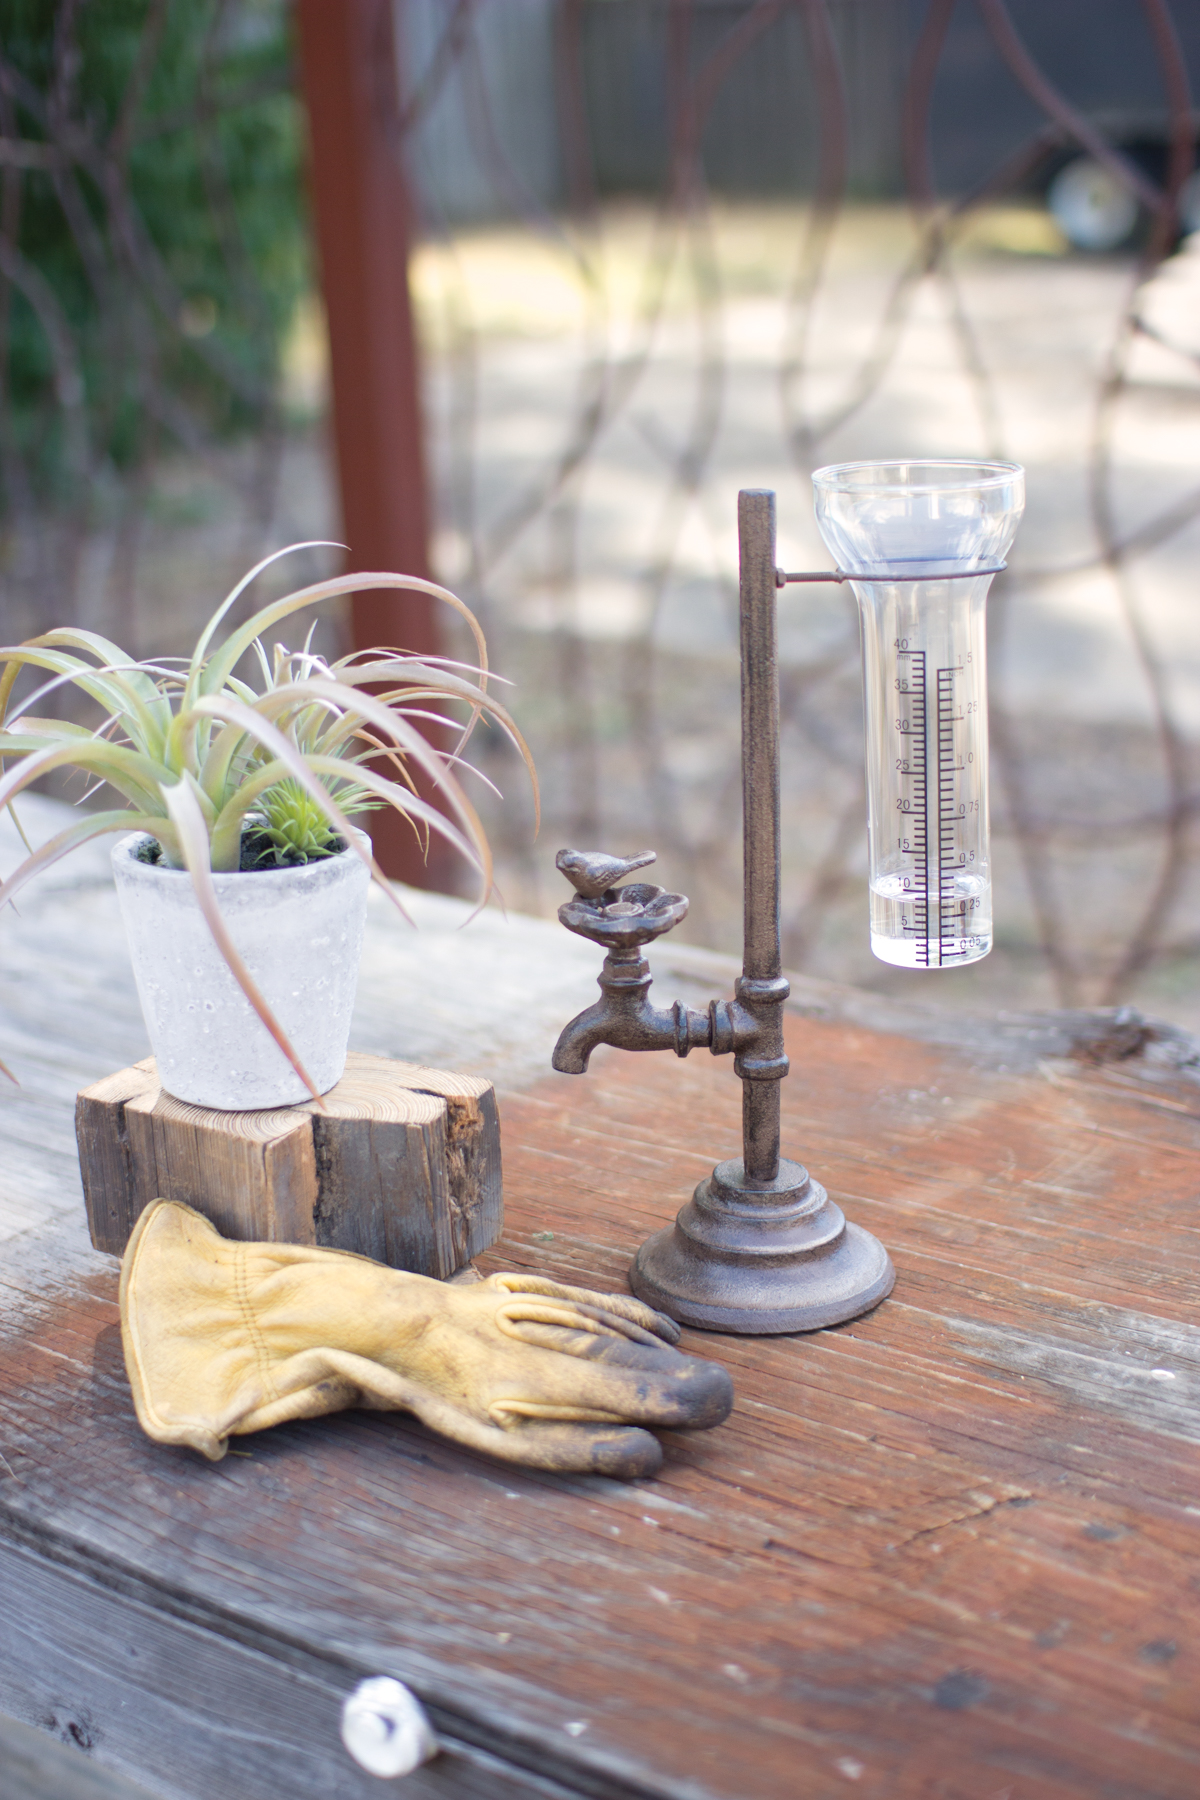 GwG Outlet Cast Iron Water Tap Rain Gauge CXX2285 by GwG Outlet